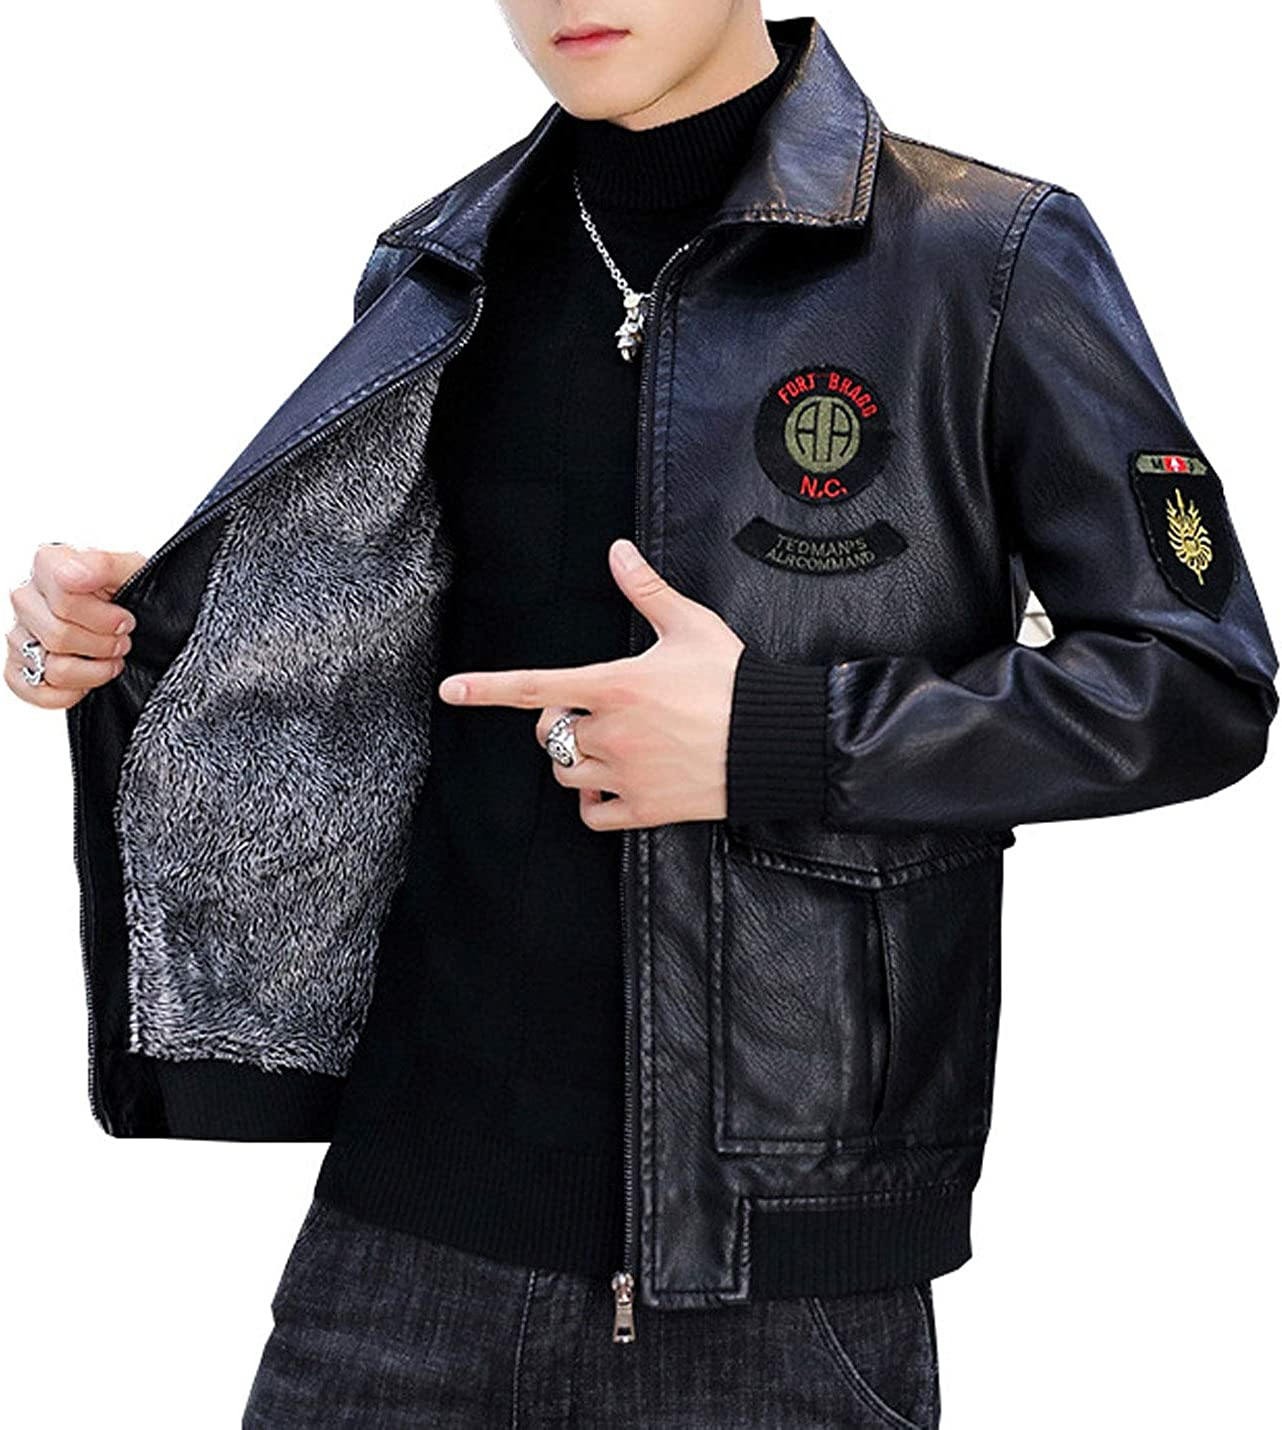 Flygo Men's Classic Winter Full Zipper Thermal Sherpa Lined Lapel PU Leather Jacket Outerwear